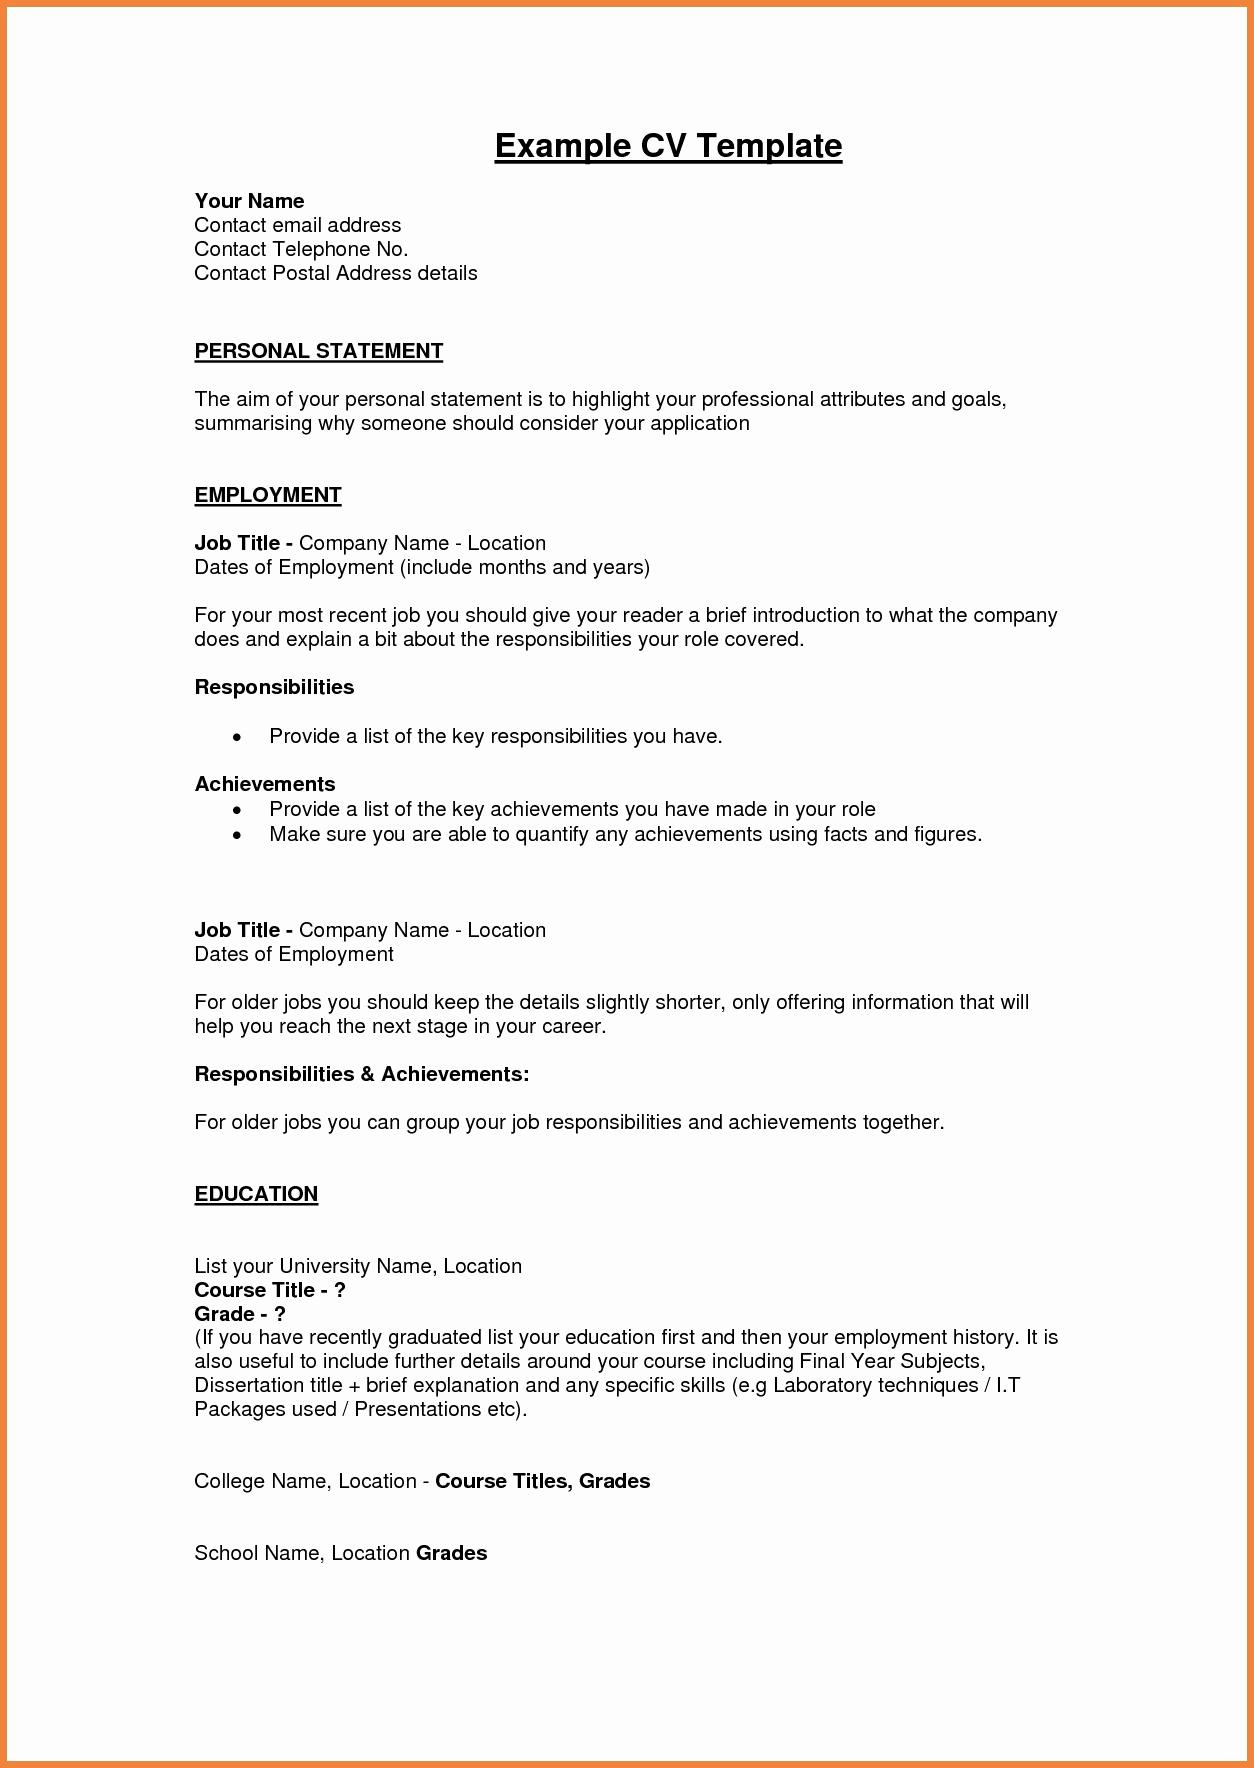 Best Profile for Resume - Profile Resume Examples Fresh Luxury Resume Pdf Beautiful Resume